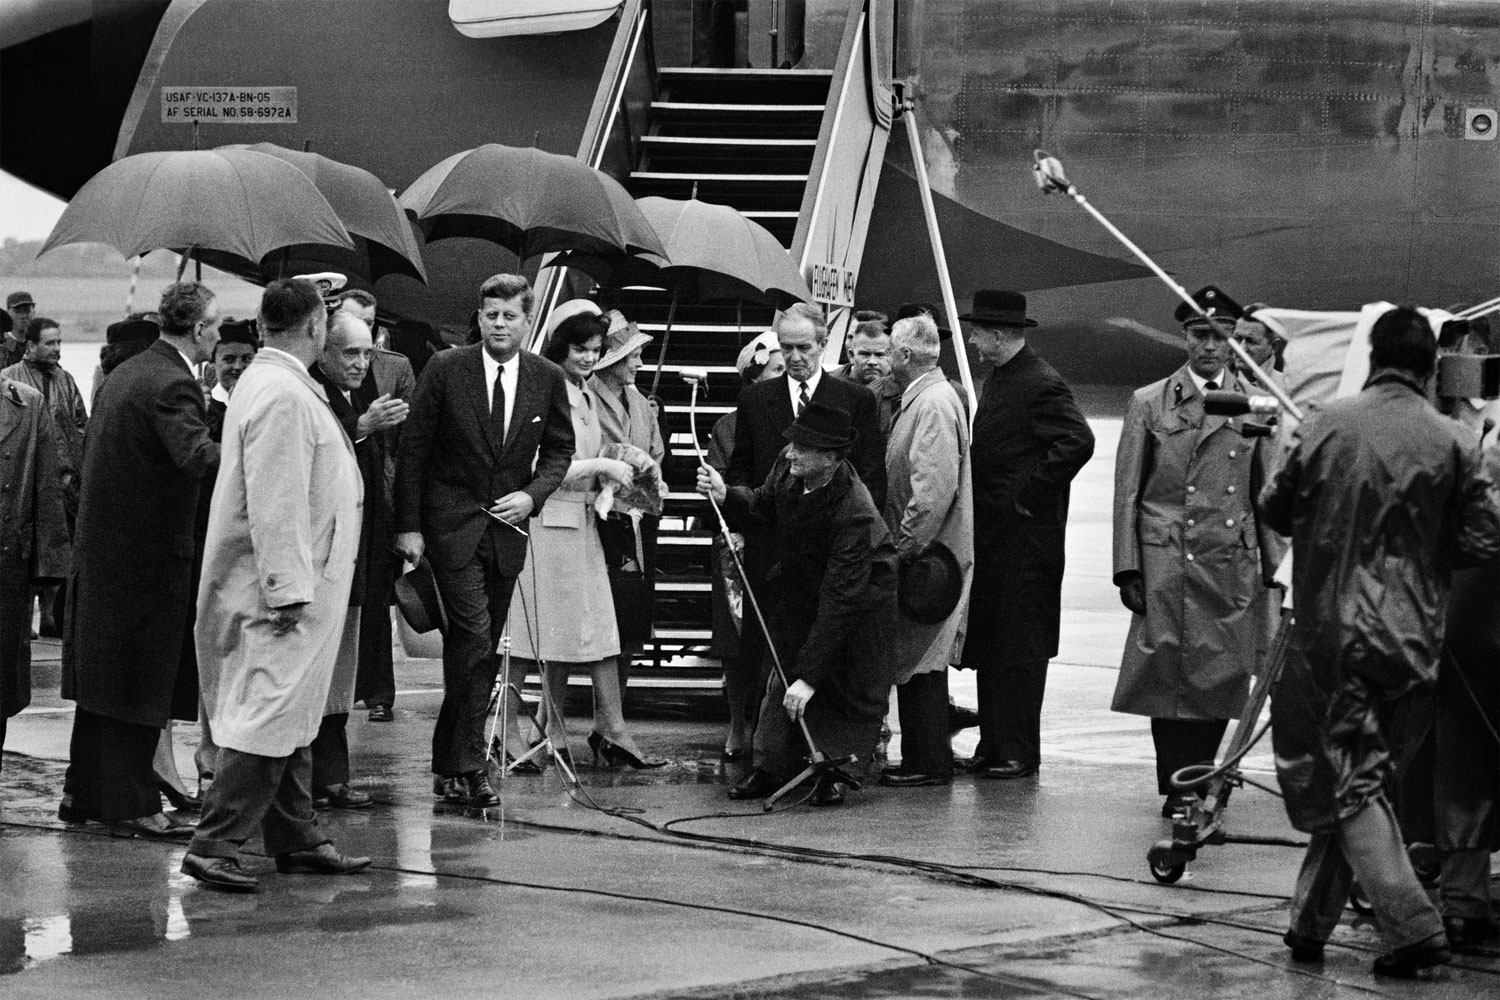 President John F. Kennedy, and Jacqueline Kennedy arrive in Vienna, Austria on Air Force One, June, 1961.